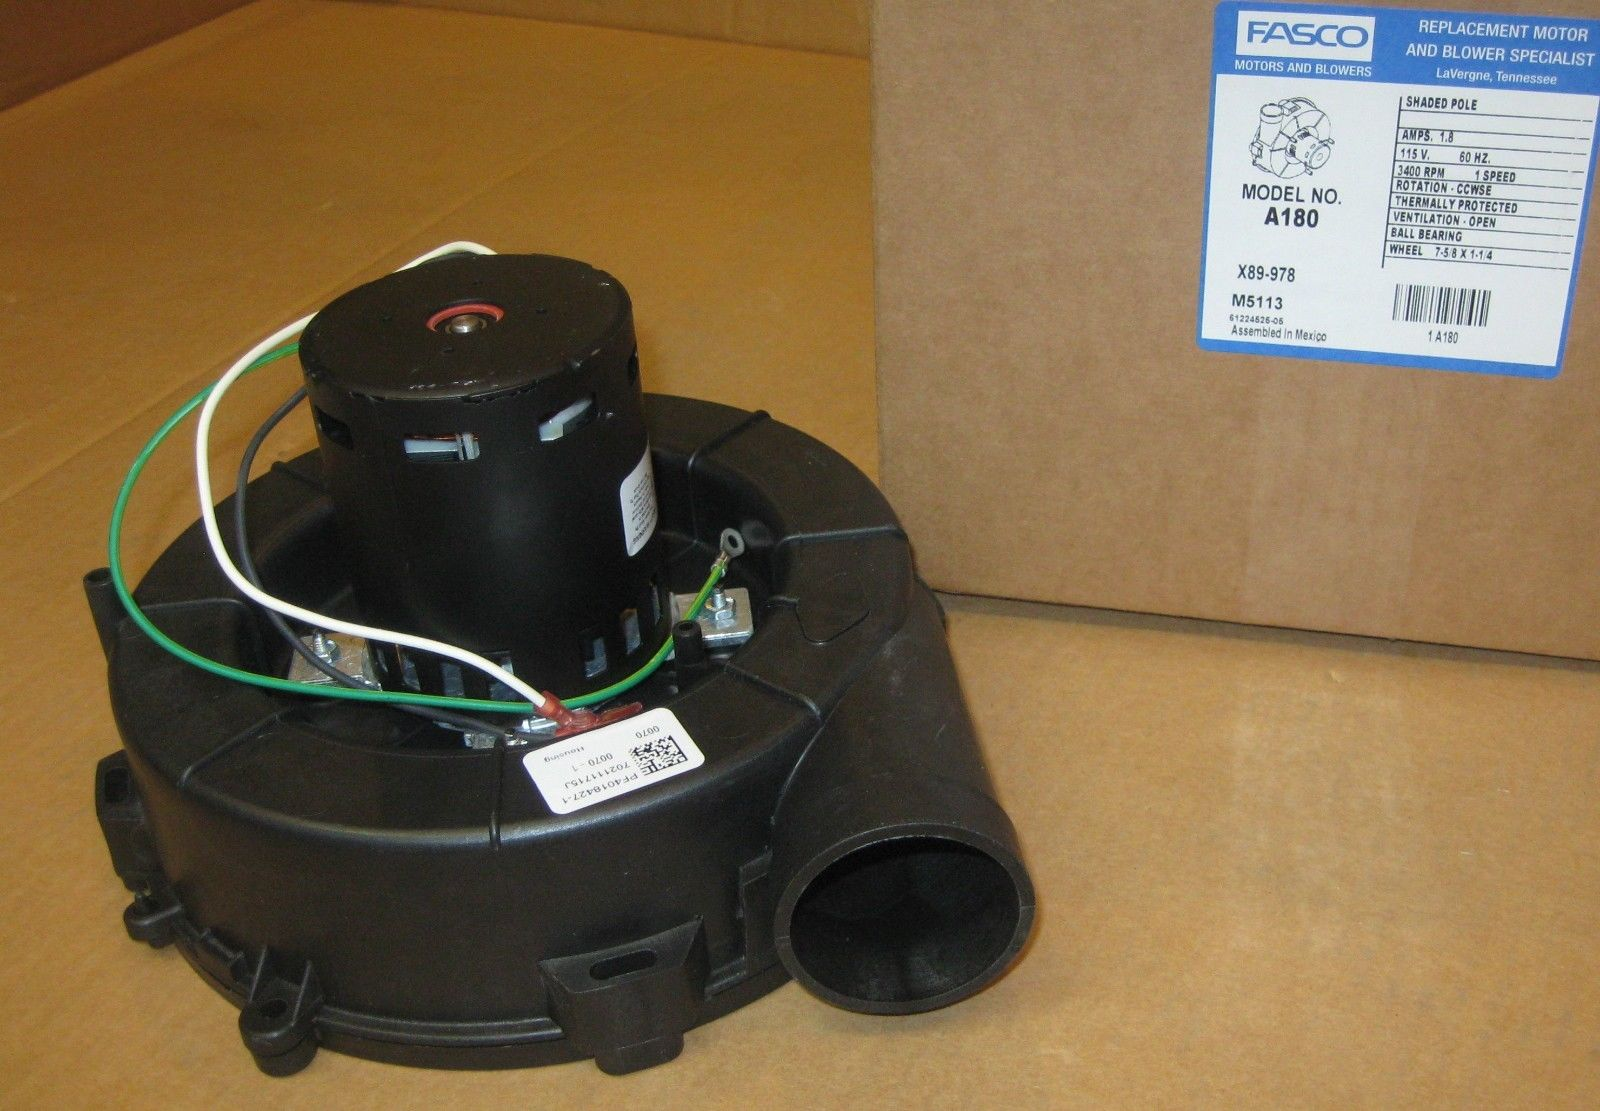 A180 Fasco Draft Inducer Furnace Blower Motor For Goodman